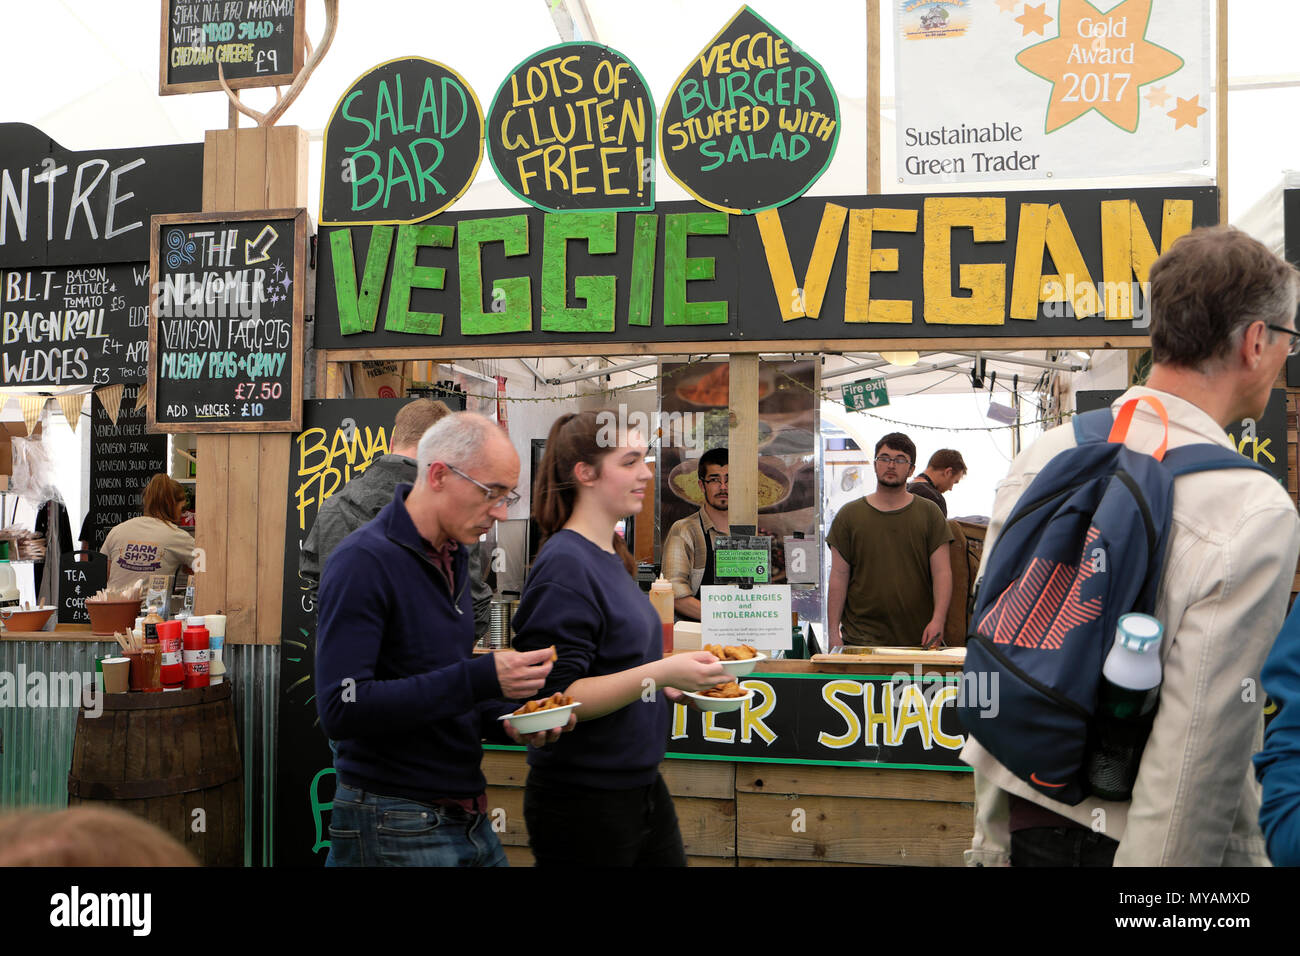 Veggie Vegan Fritter Shack and people outside food stall in the Hay Festival Food Hall at Hay-on-Wye Wales UK  KATHY DEWITT - Stock Image